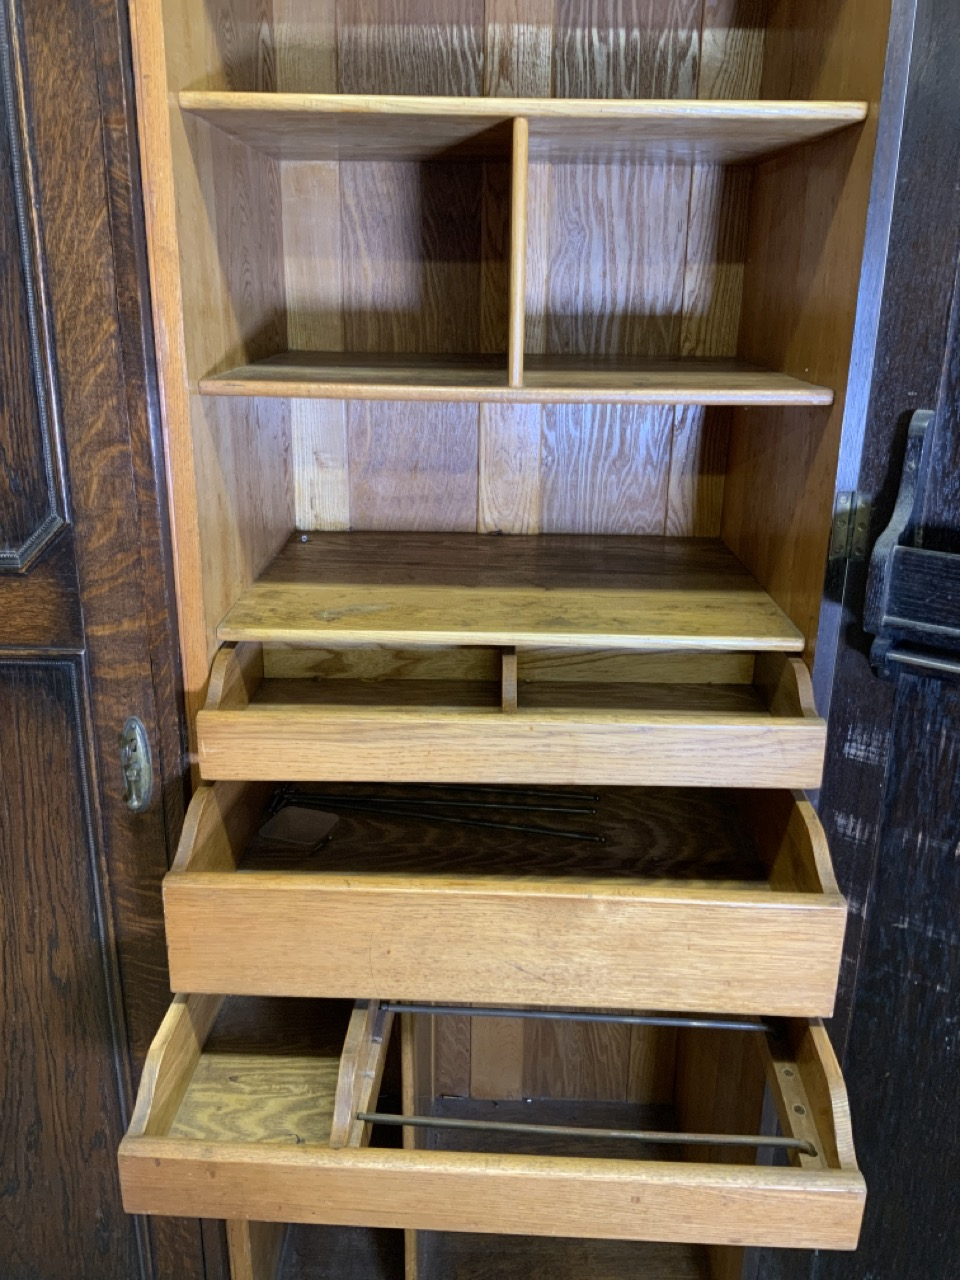 An early 20th century gentleman's oak double wardrobe by Awlyn furniture with fitted shelves, - Image 4 of 10